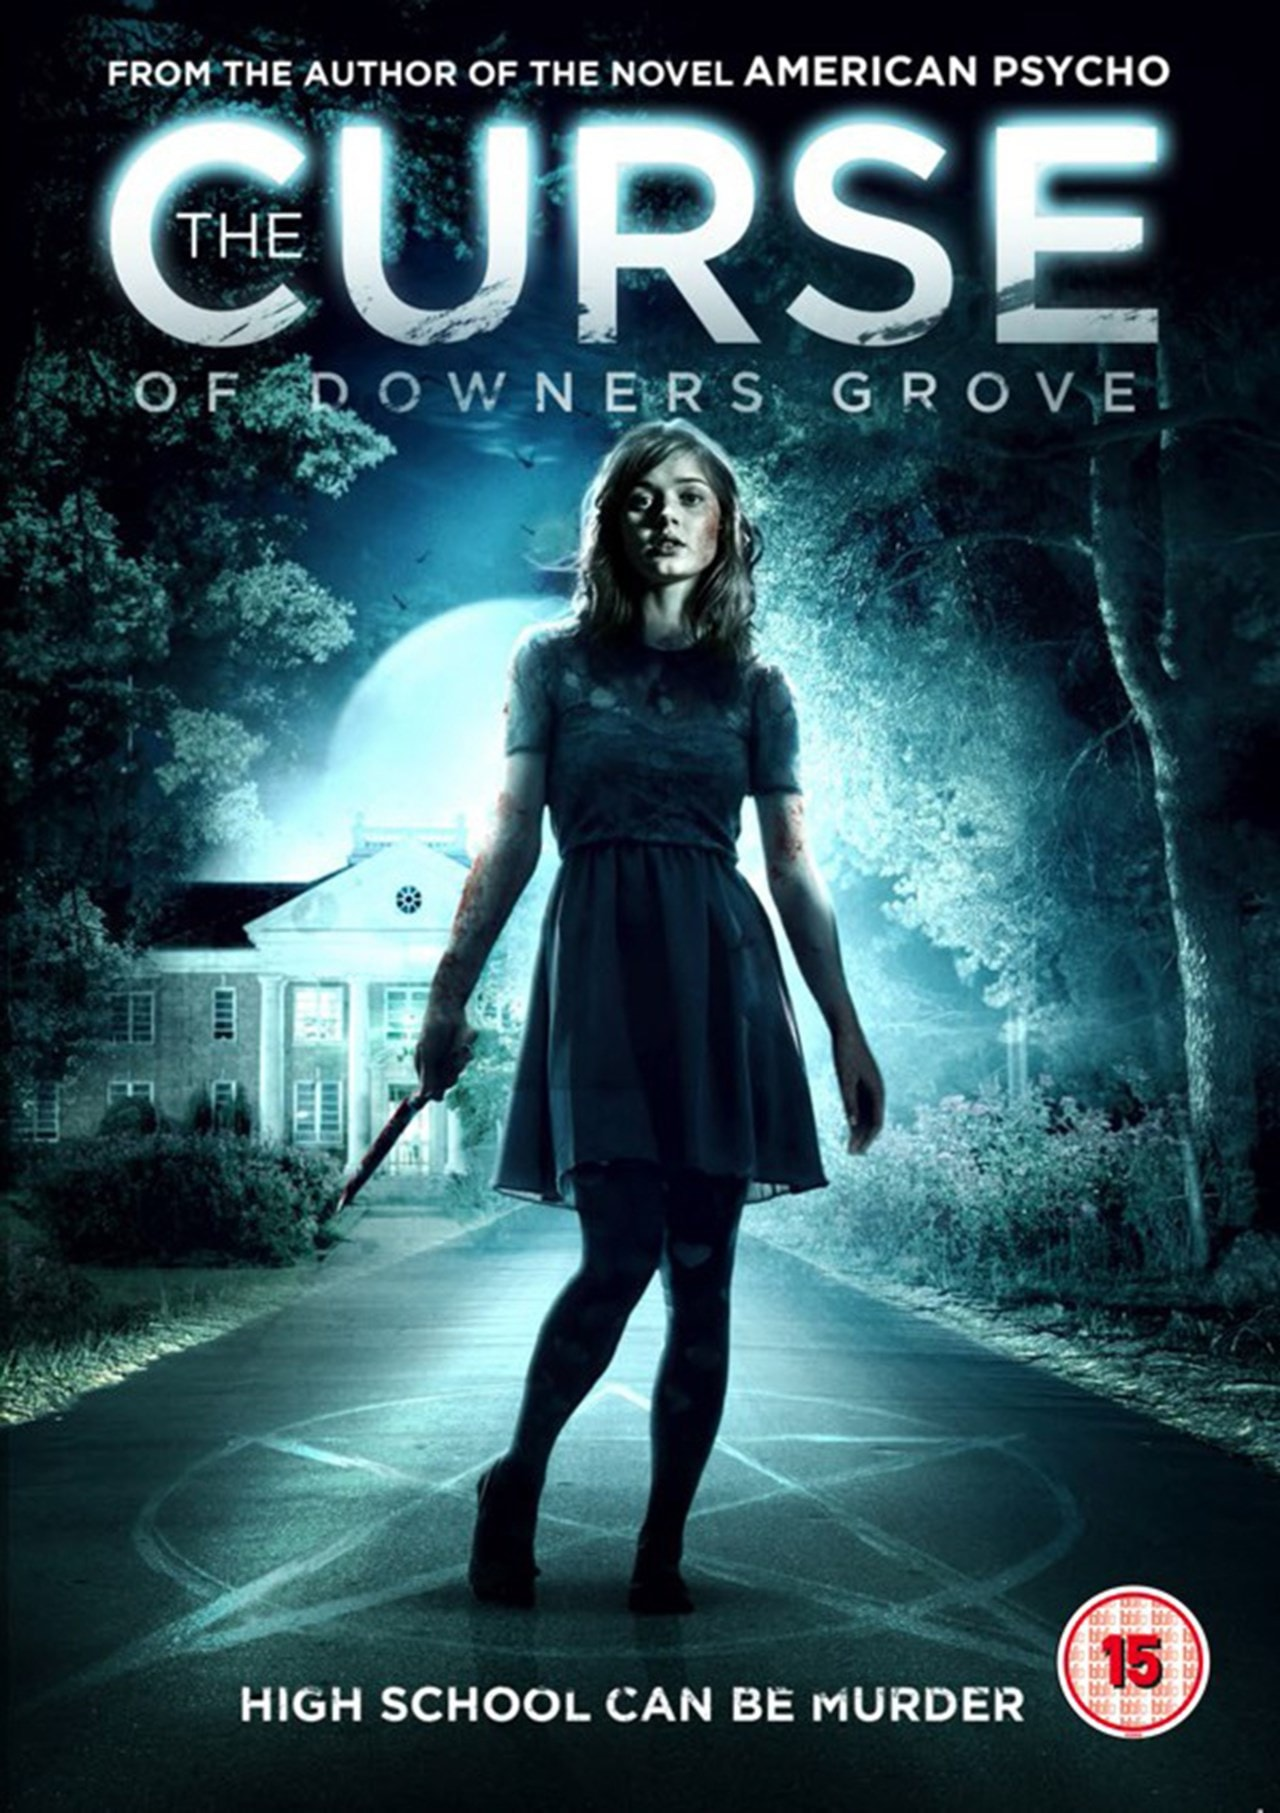 The Curse of Downers Grove - 1